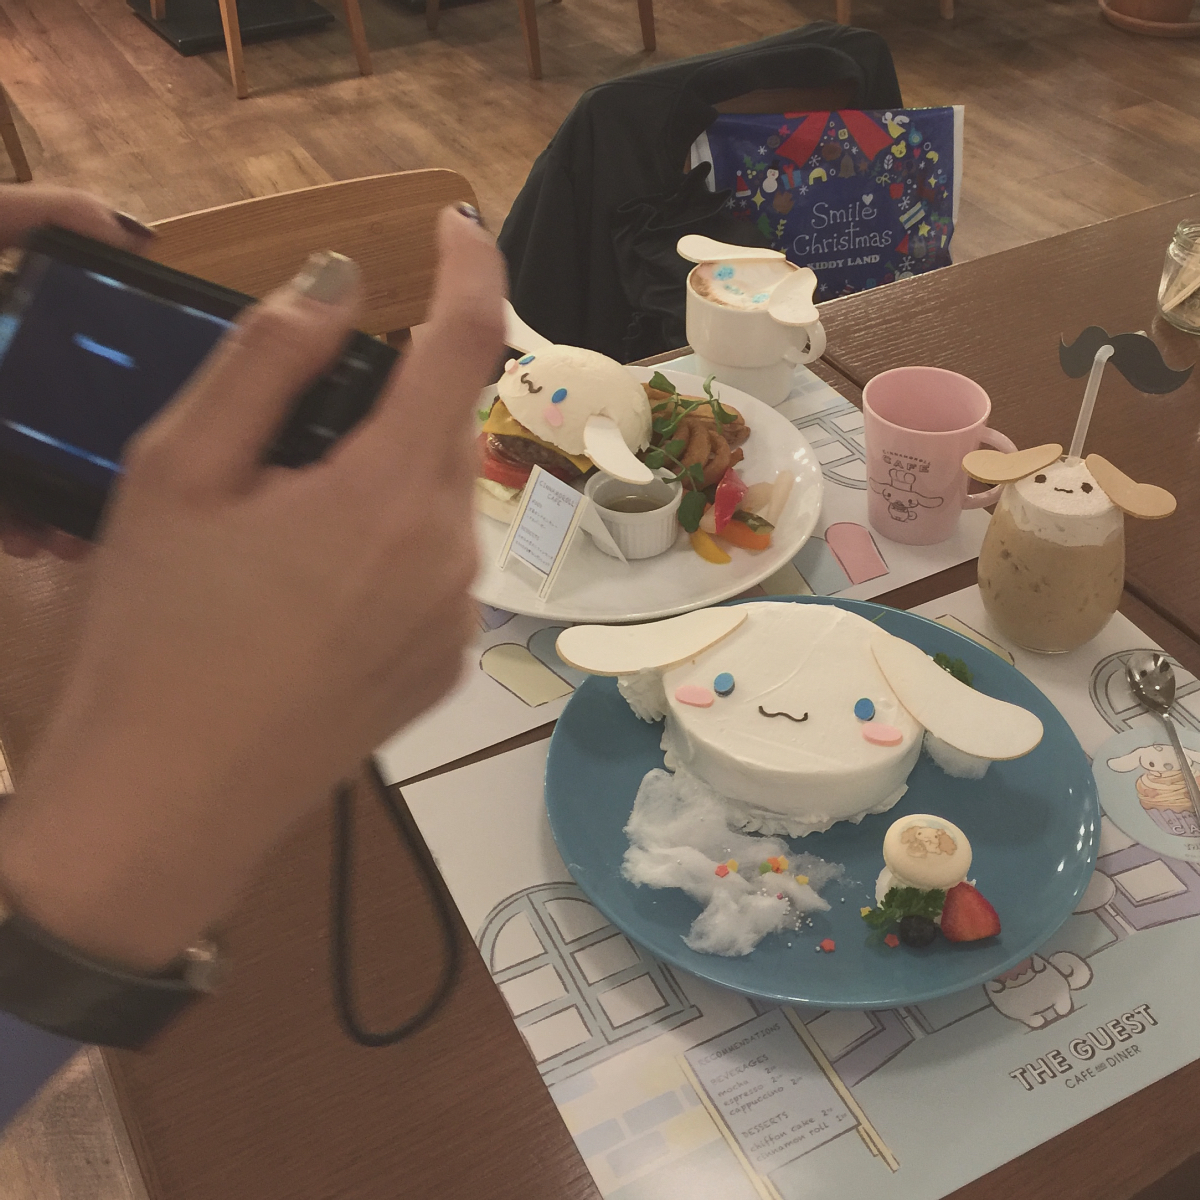 Photo 12-31-15, 5 23 23 PMkawaii cinnamoroll cafe shibuya